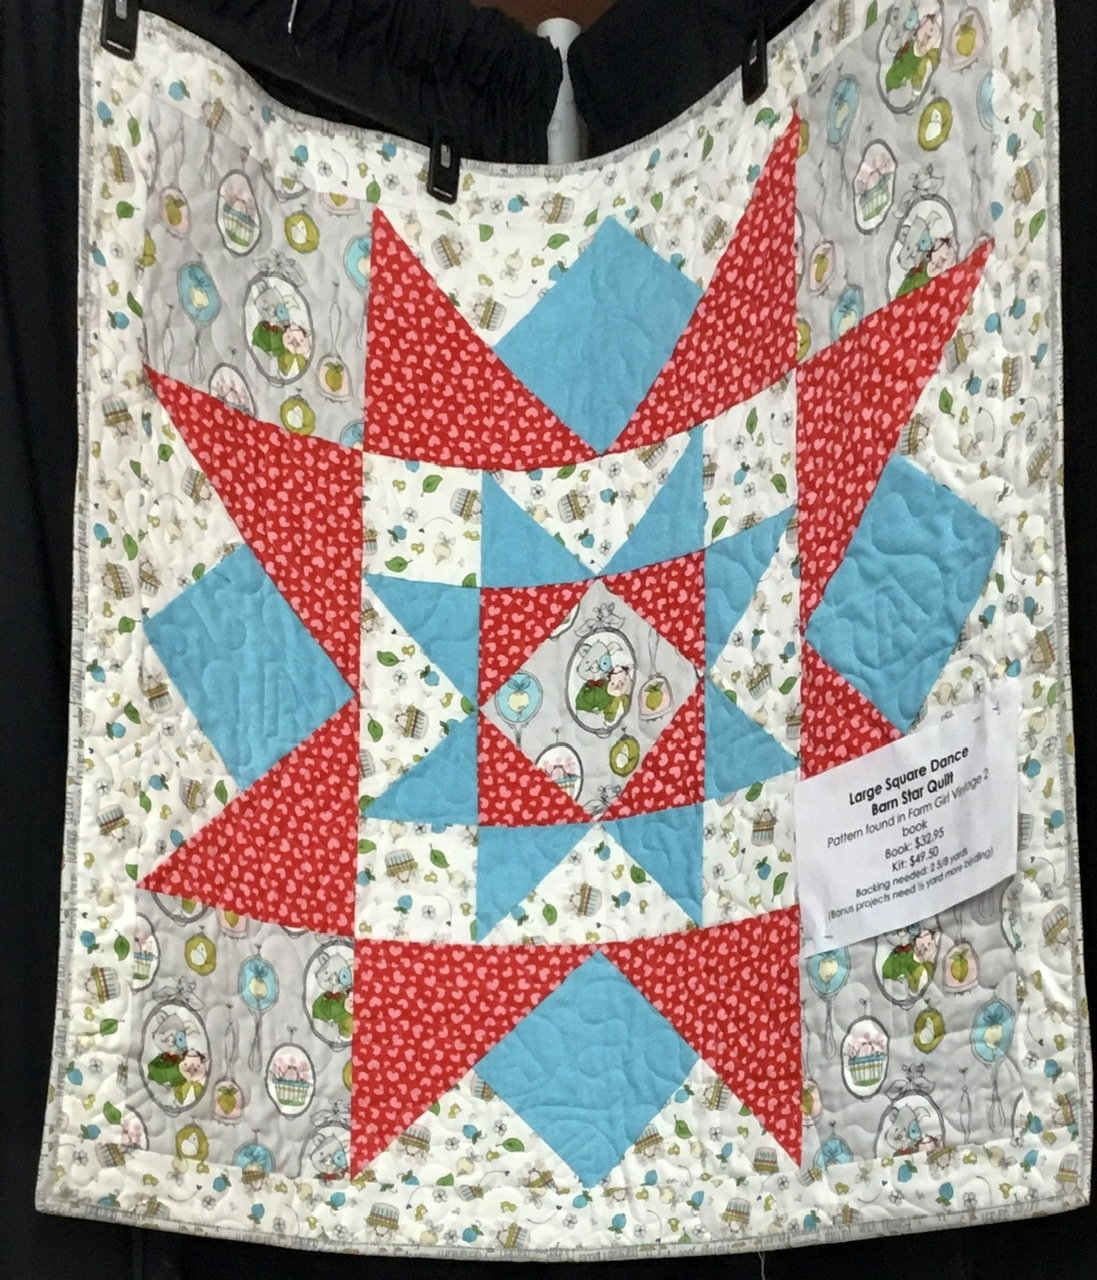 Large Square Dance Barn Star Quilt, 37 X 37, Binding included, pattern sold separate (Farm Girl Vintage 2)